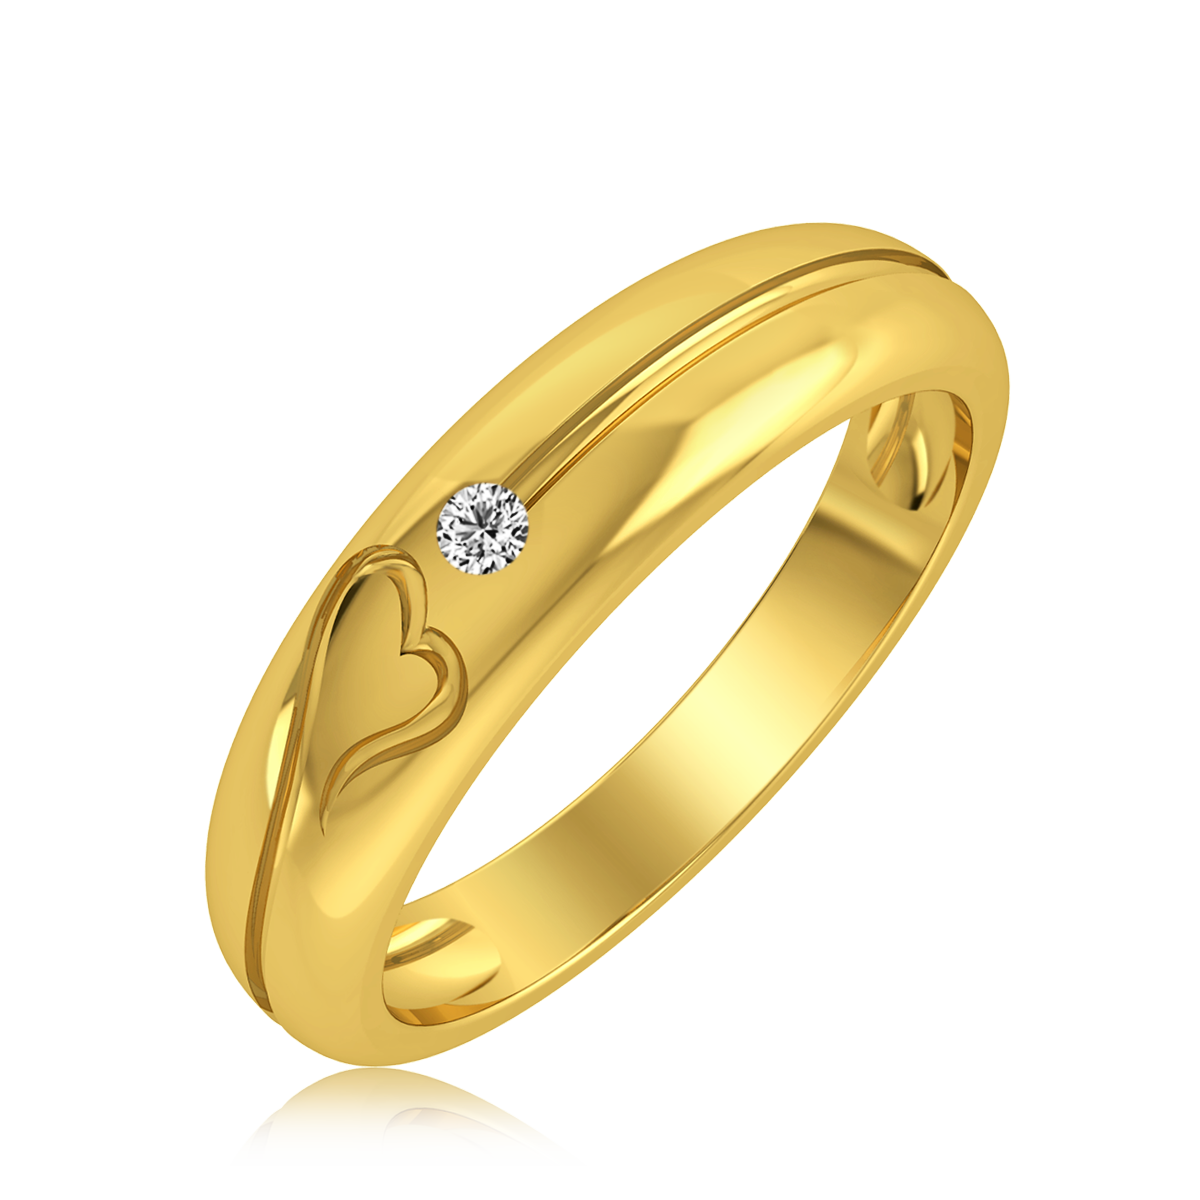 Buy Diamond And Gold Jewellery Online At Best Prices In India ...